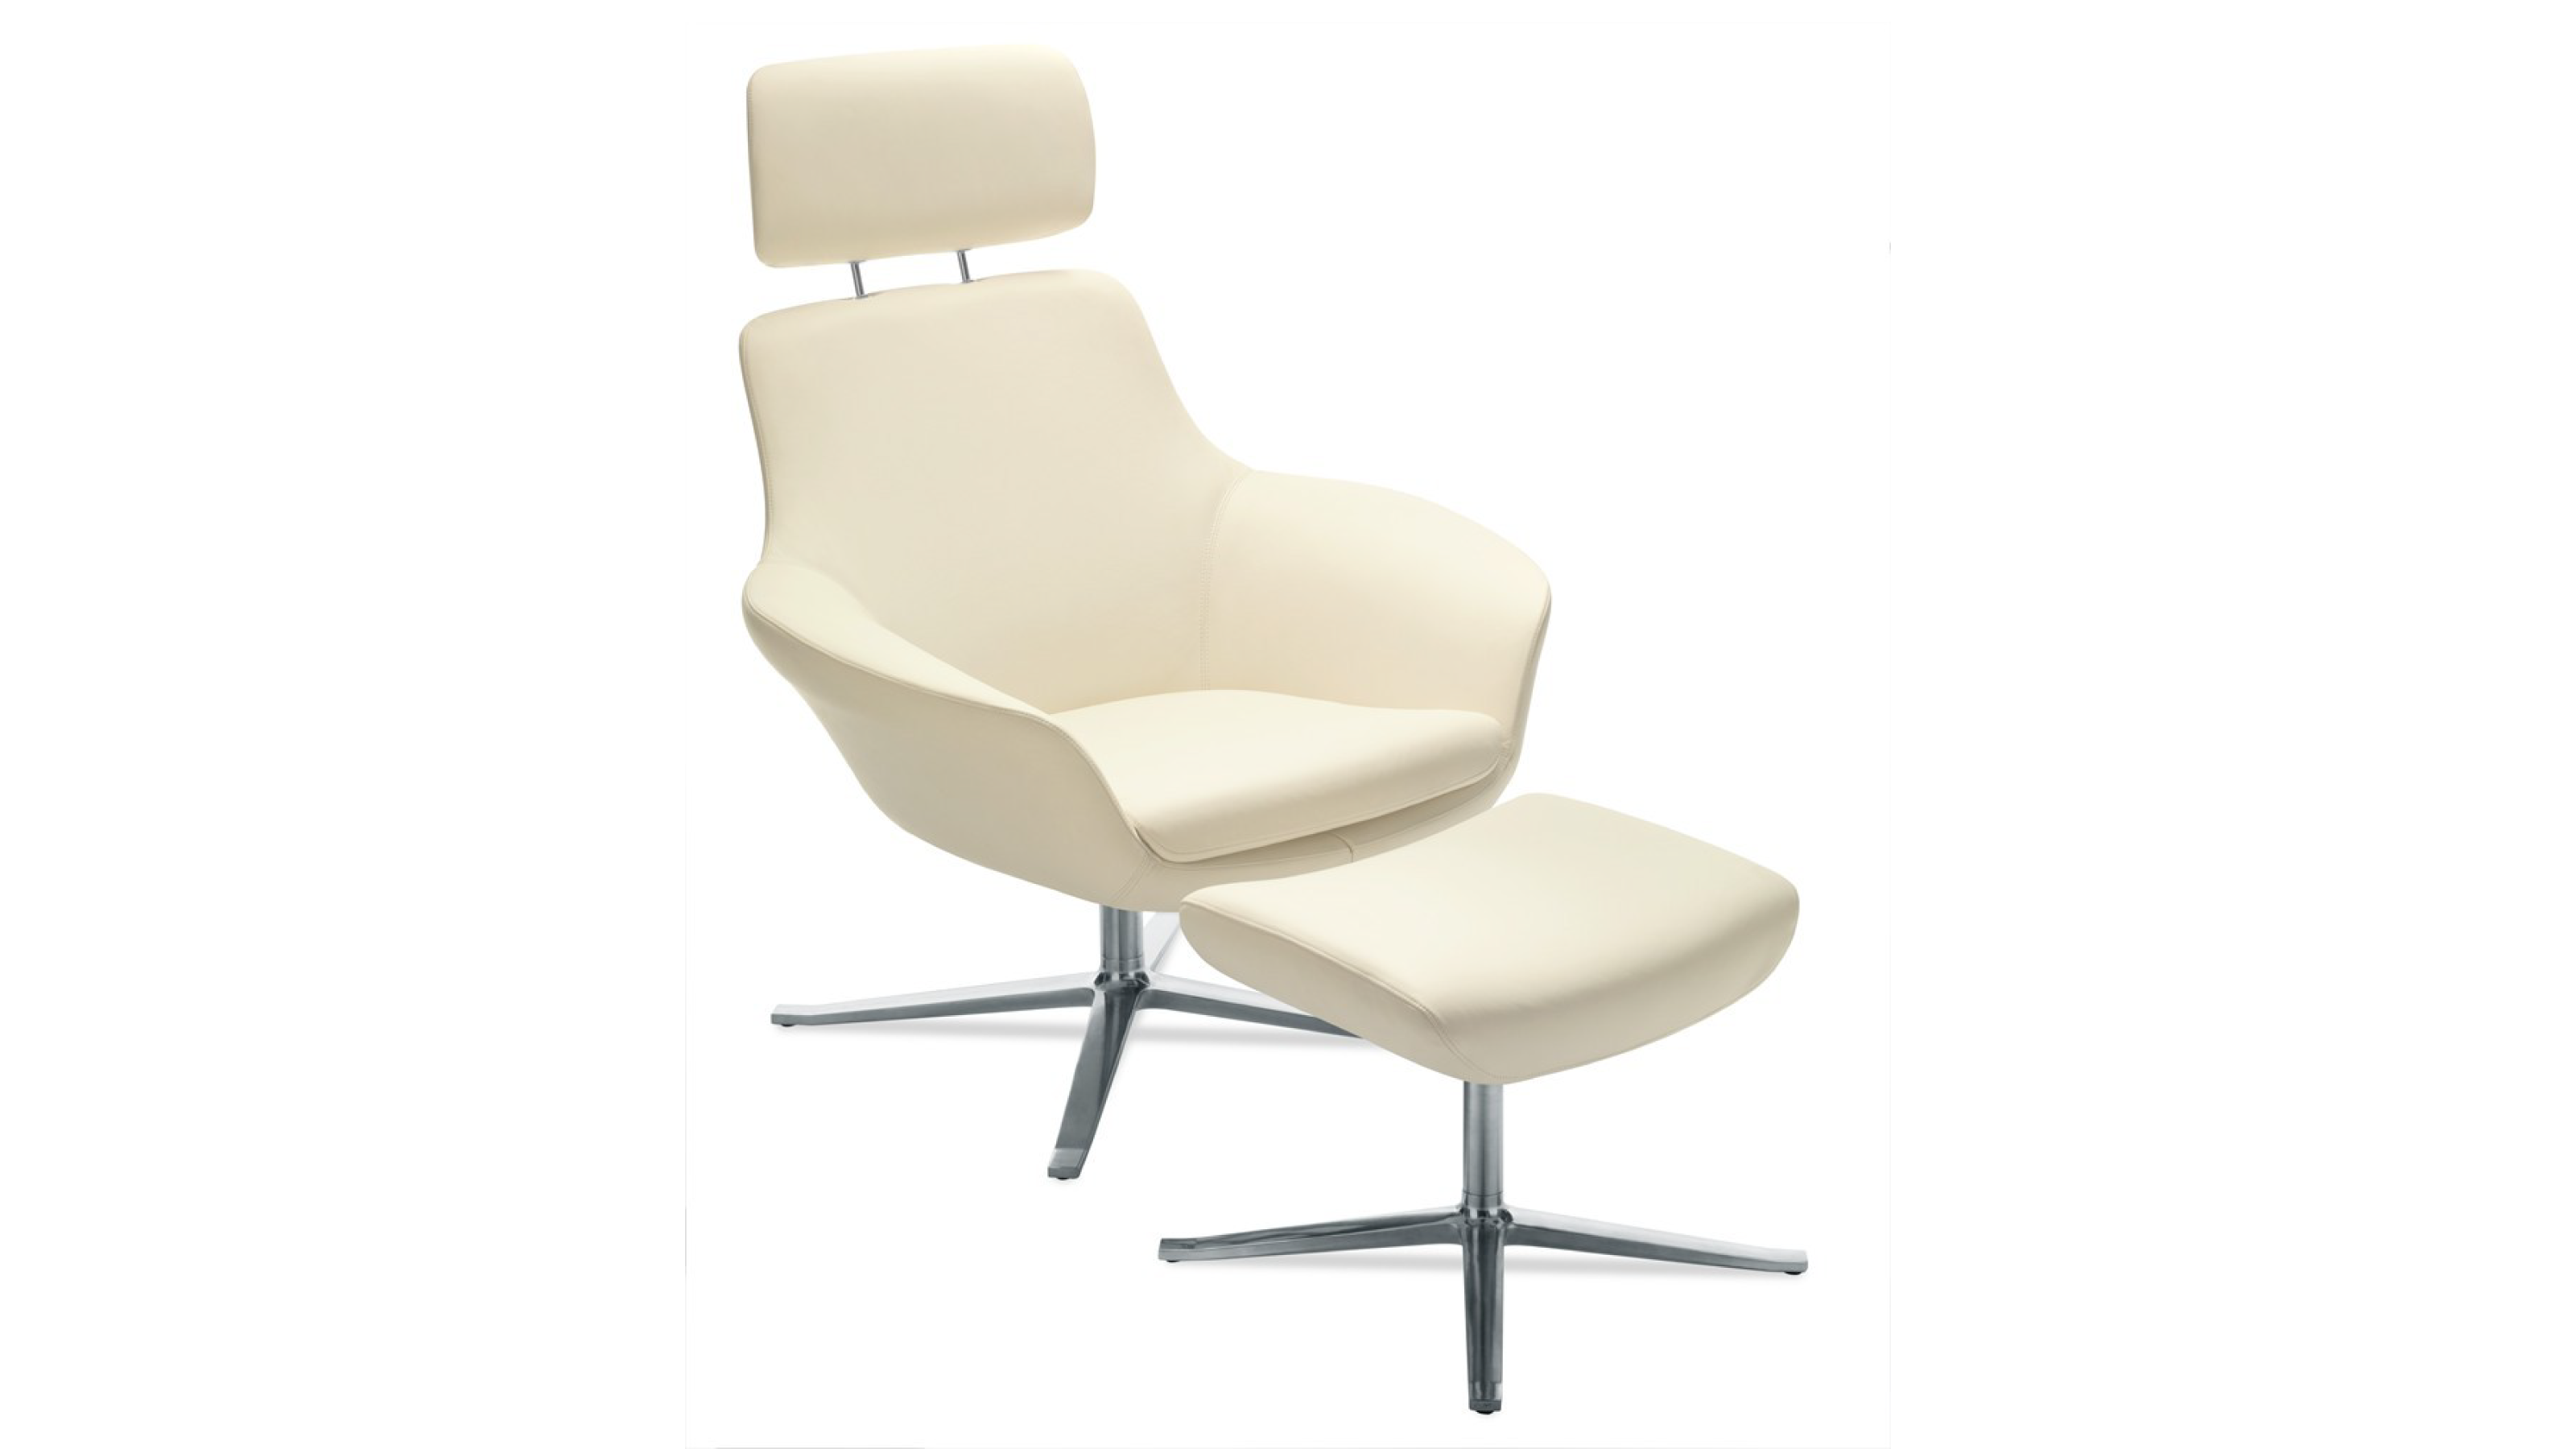 Bob Lounge Chair | Healthcare furniture, Comfortable ...